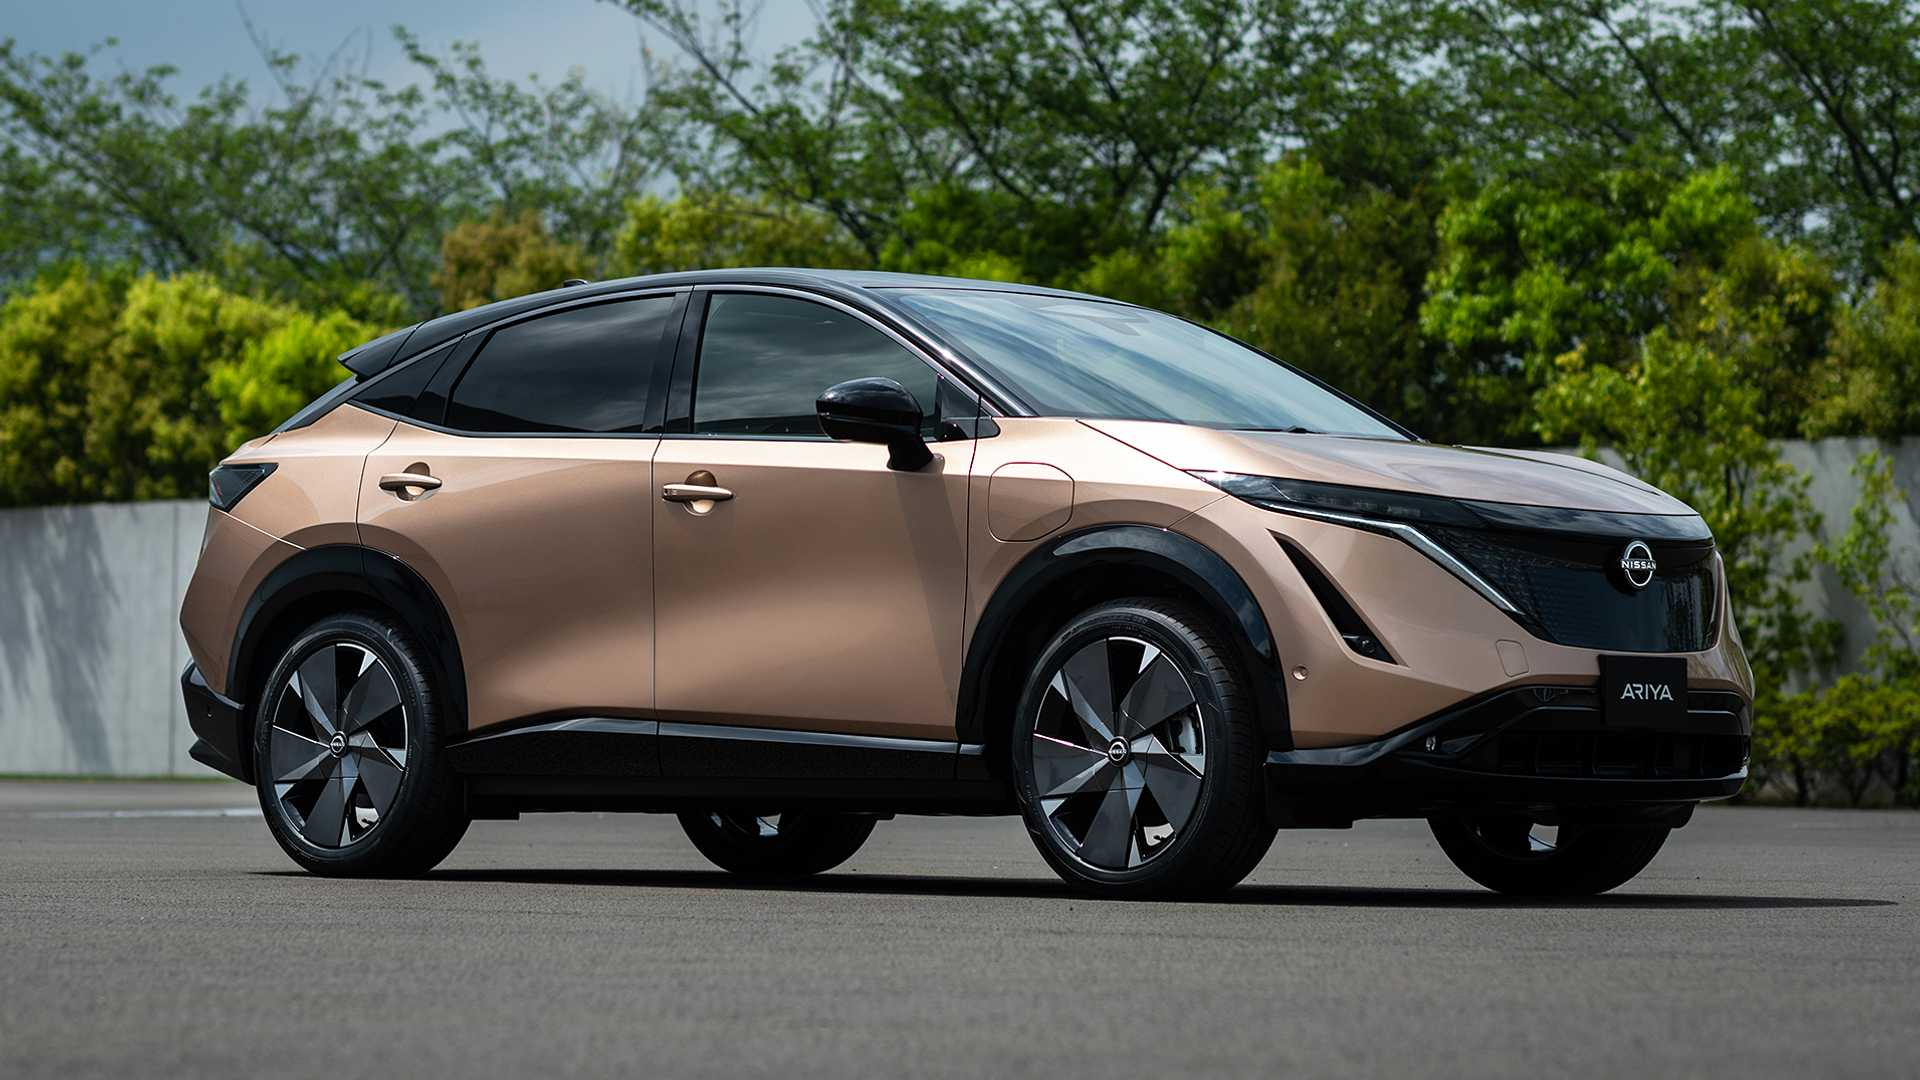 2022 Nissan Ariya electric SUV revealed with up to 310 miles of range